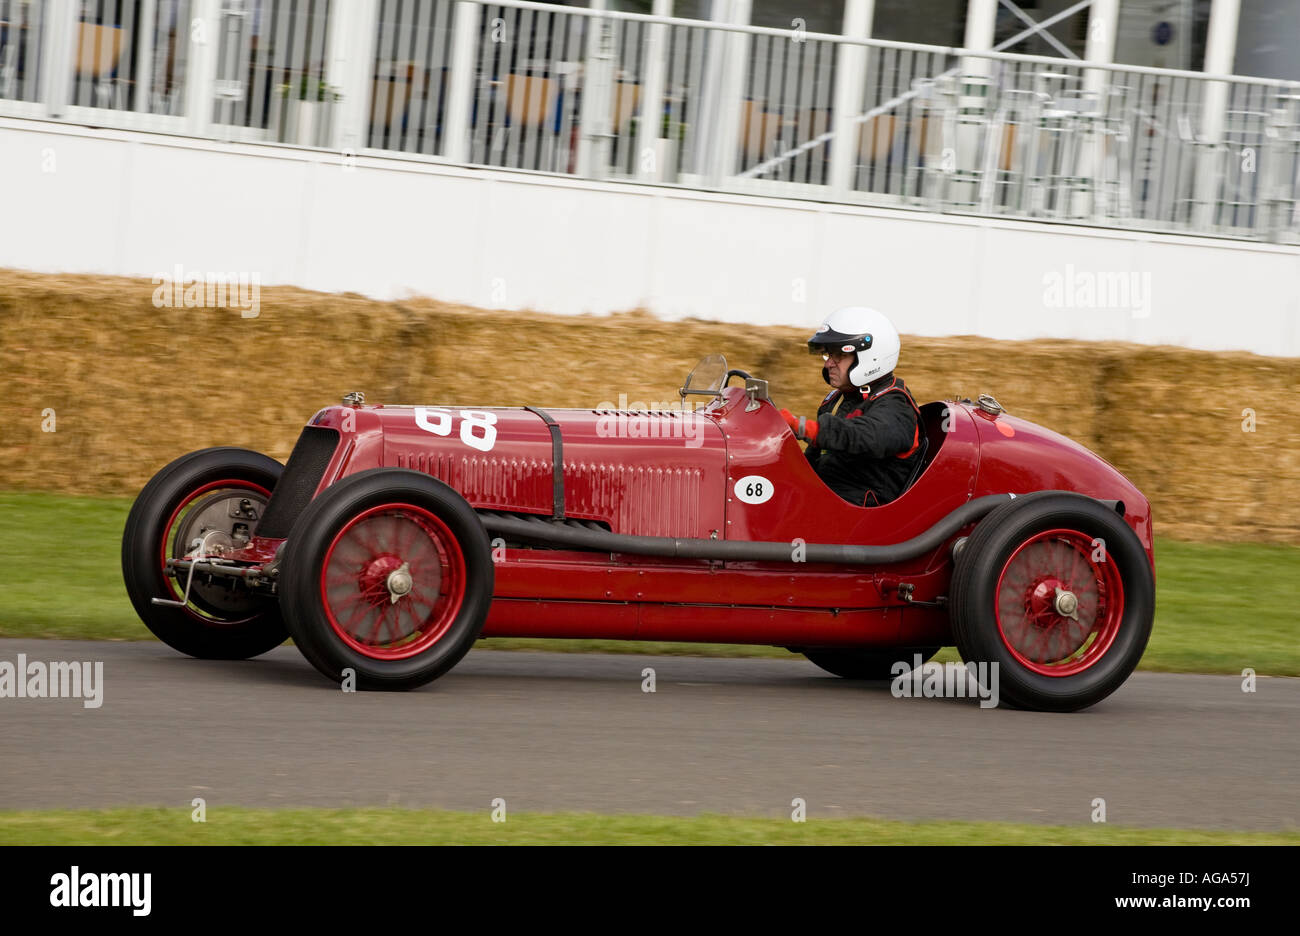 1933 Maserati 8CM at the Goodwood Festival of Speed, Sussex, UK. - Stock Image